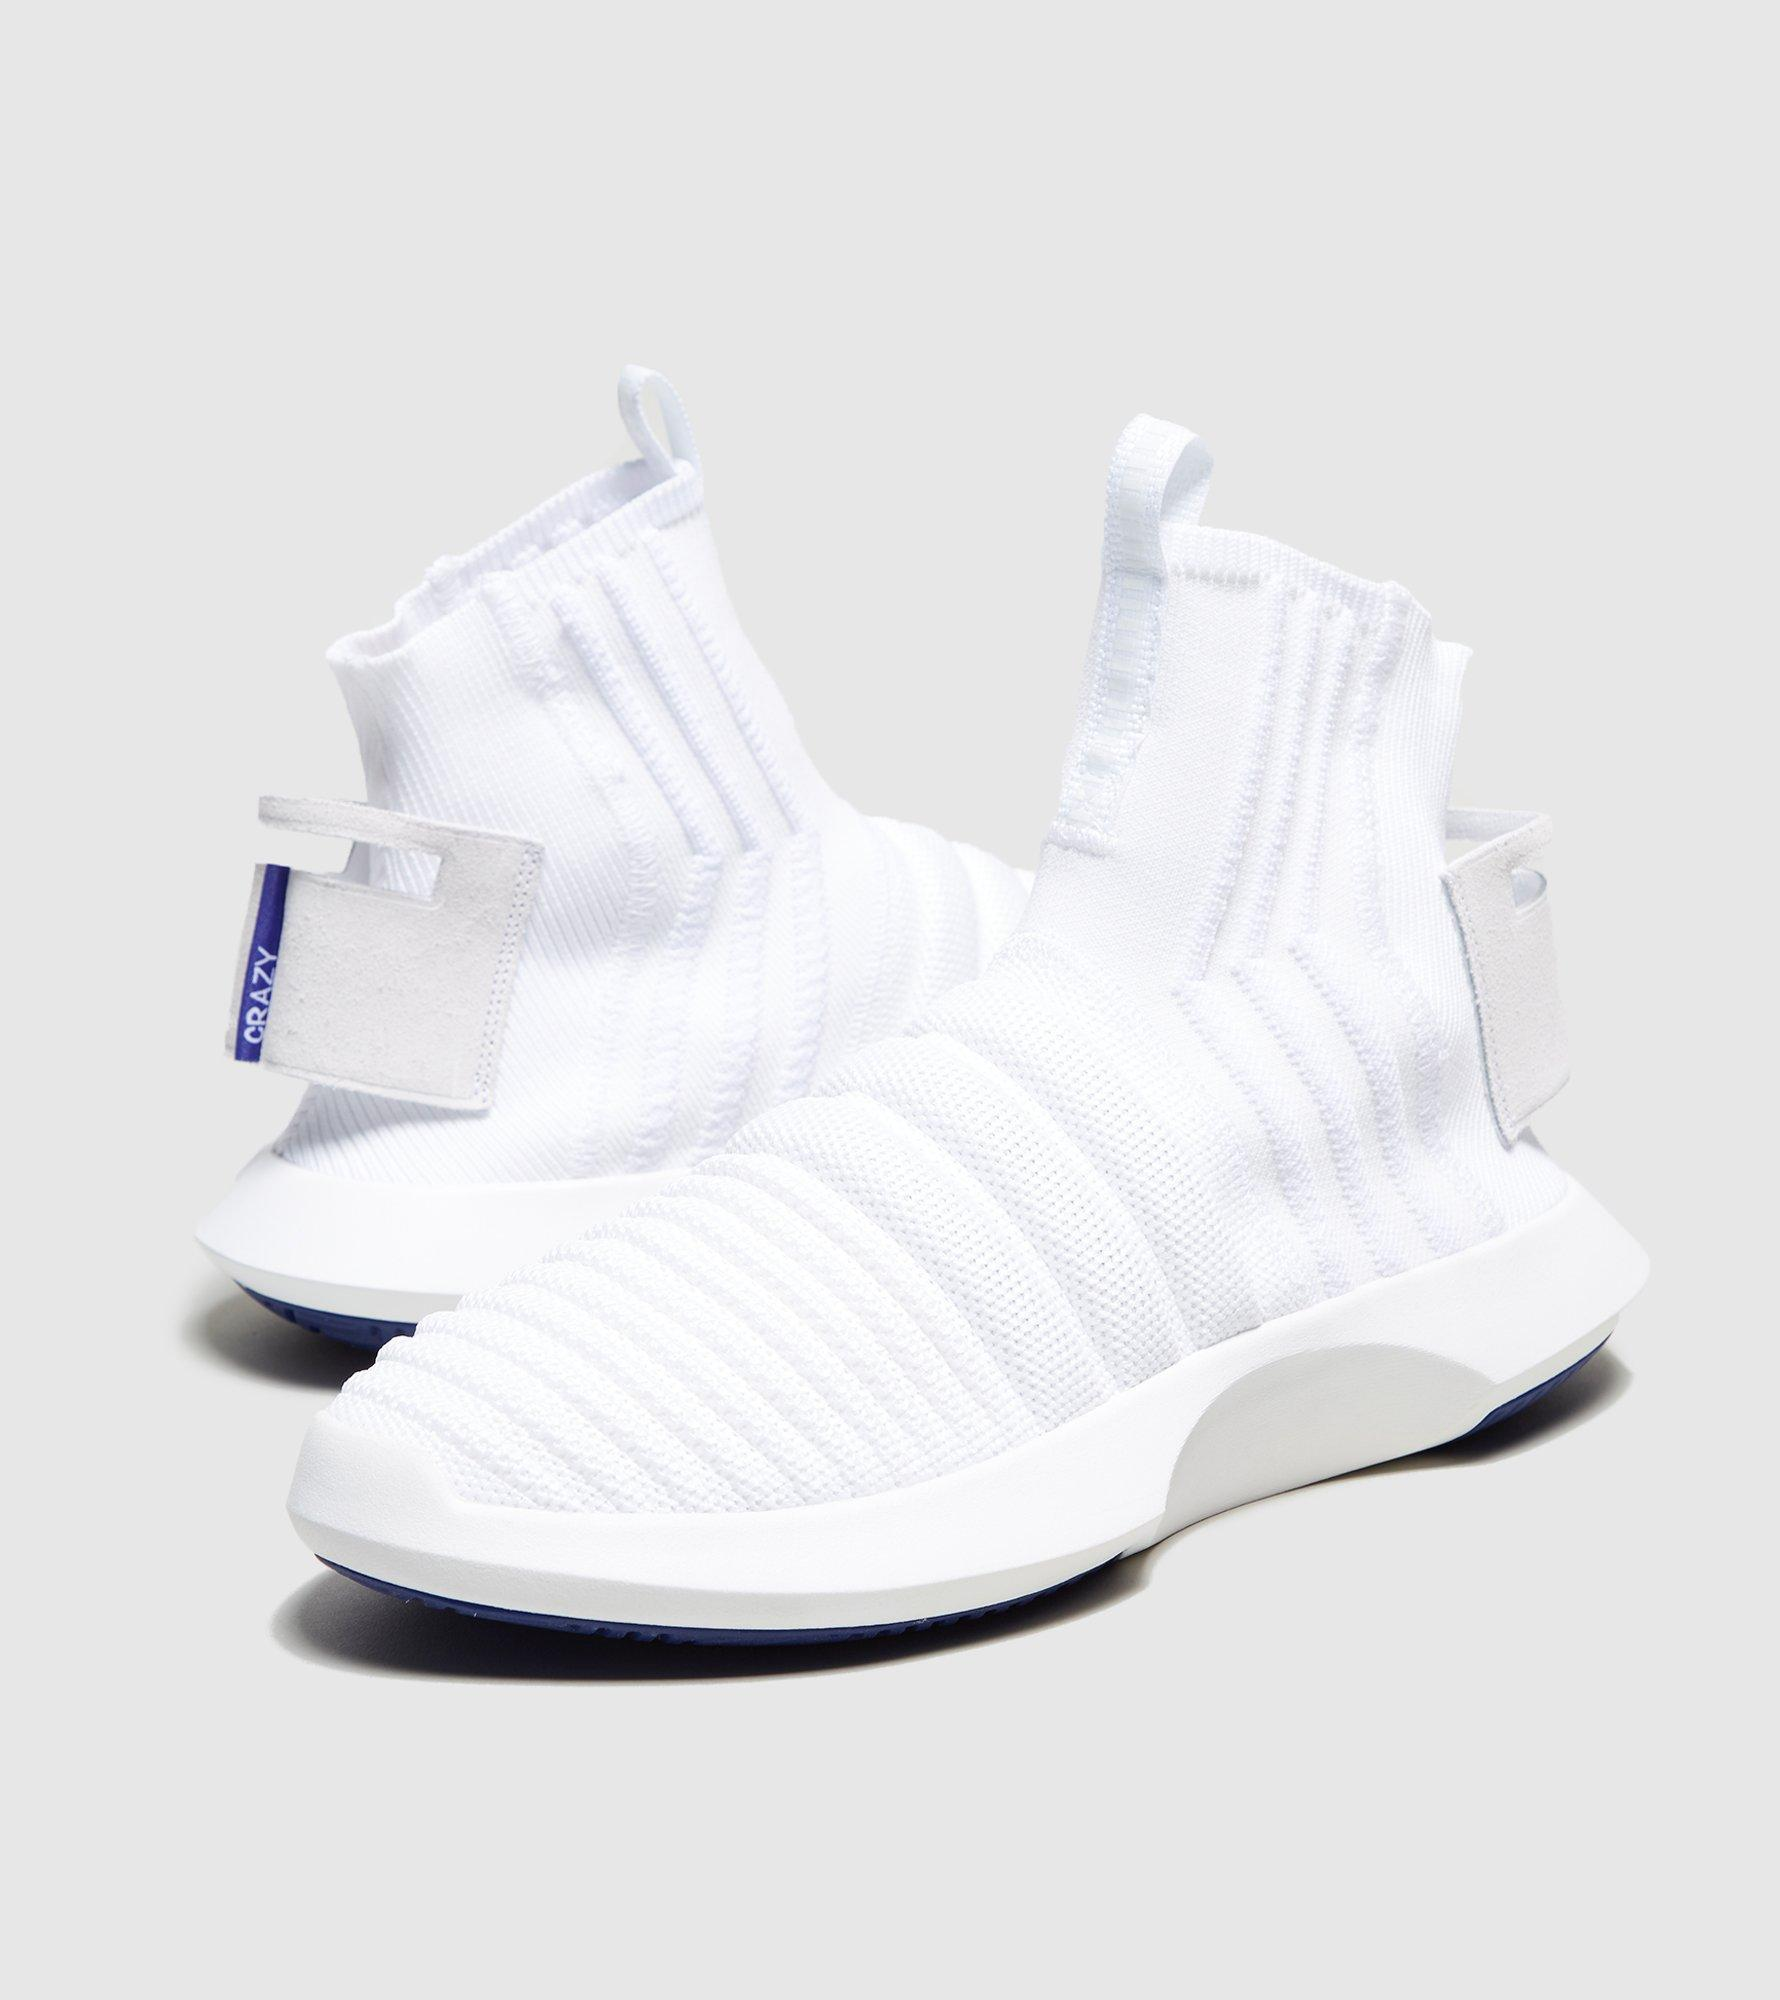 7c12c5eb14cb Lyst - adidas Originals Crazy 1 Sock Adv Primeknit in White for Men